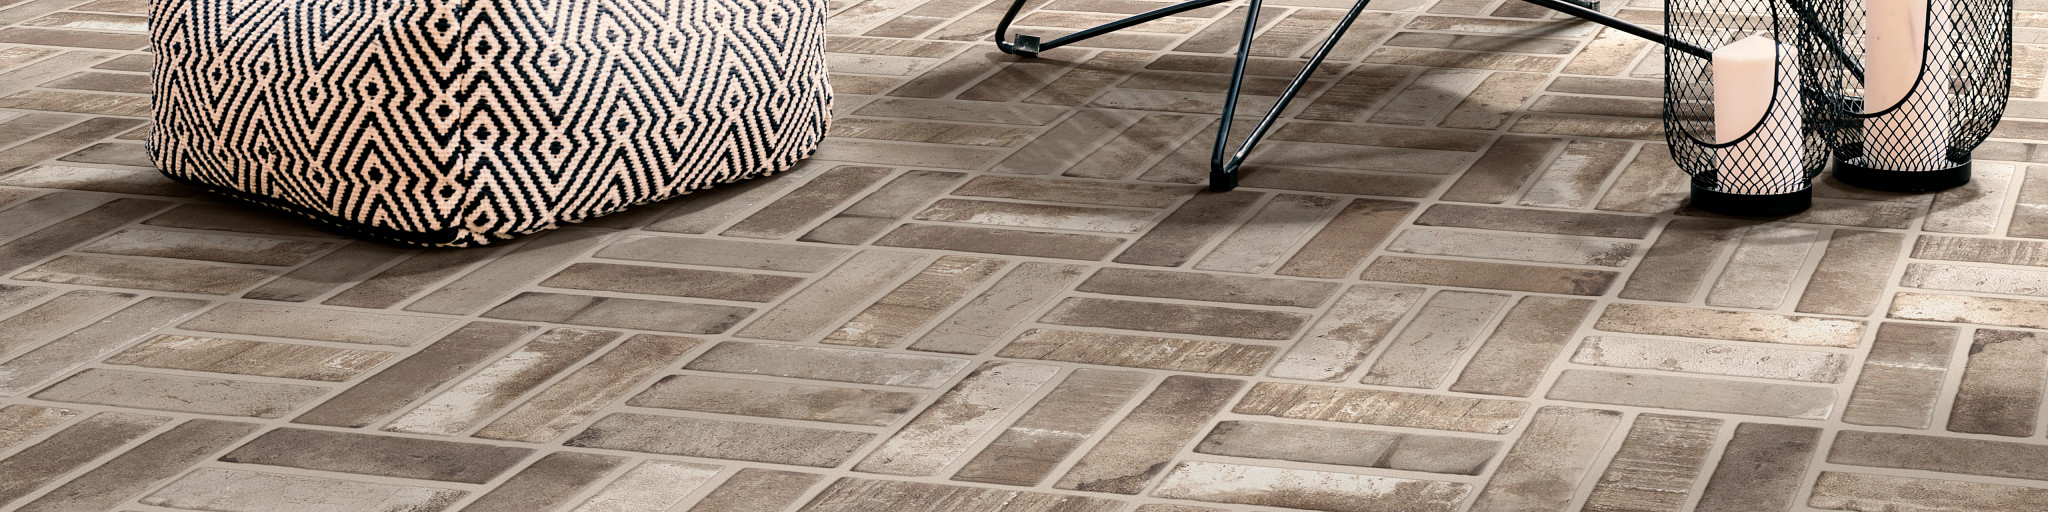 Tile-and-Stone-Bowery-390TS-00590-Griege-Outdoors-Outside-Patio-2021